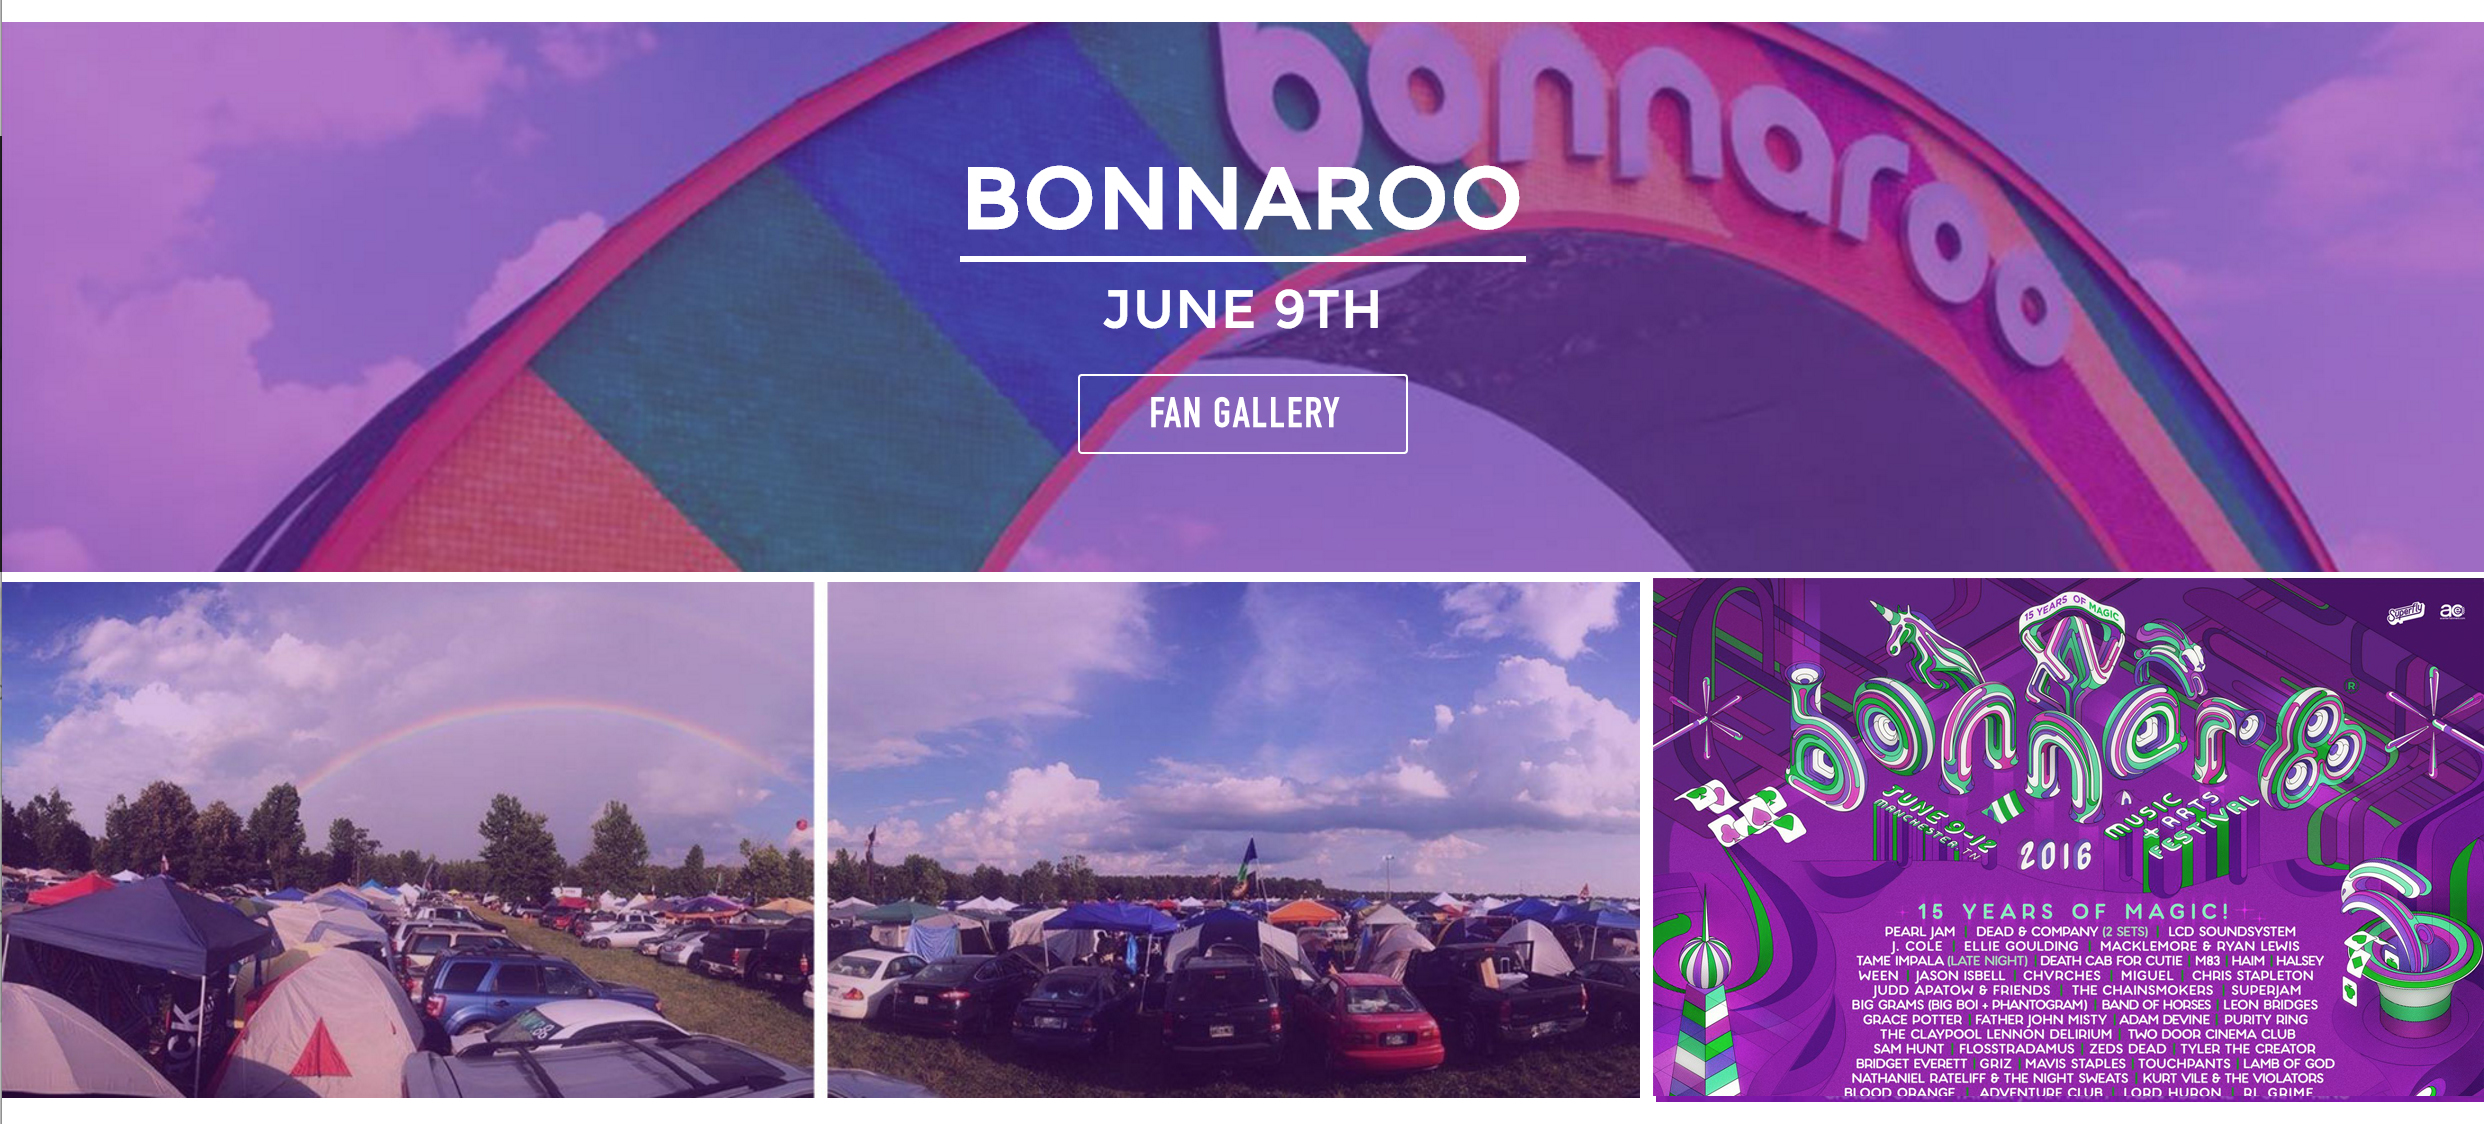 Bonnaroo Fan Gallery